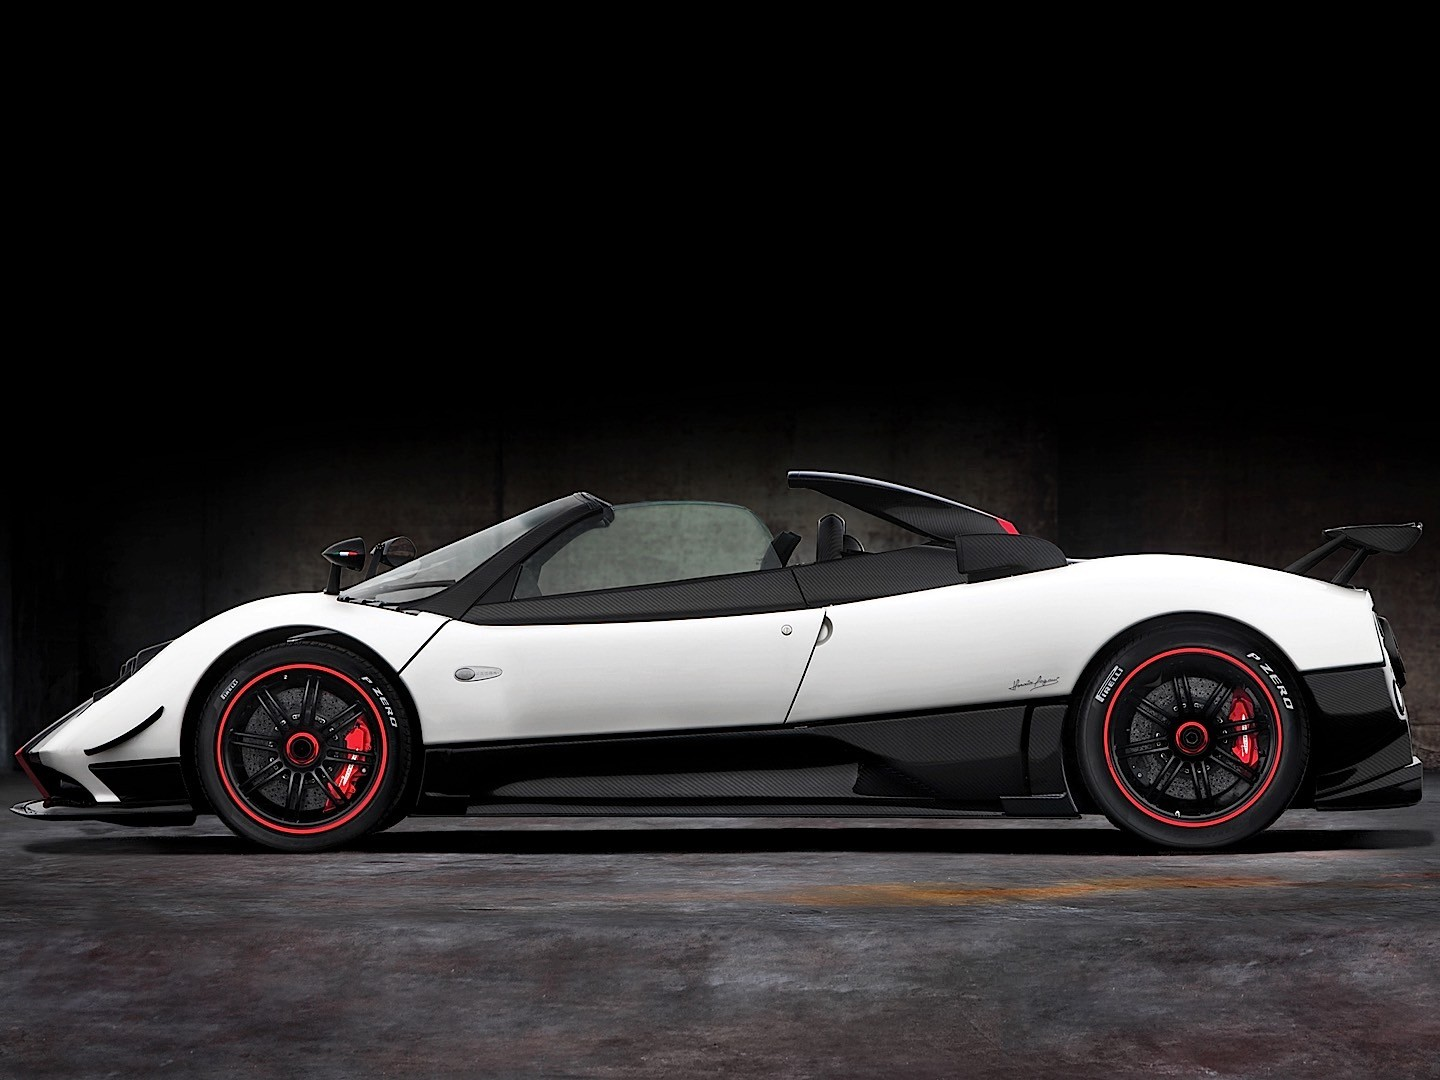 Acura Exotic Car >> PAGANI Zonda Cinque Roadster - 2009, 2010 - autoevolution